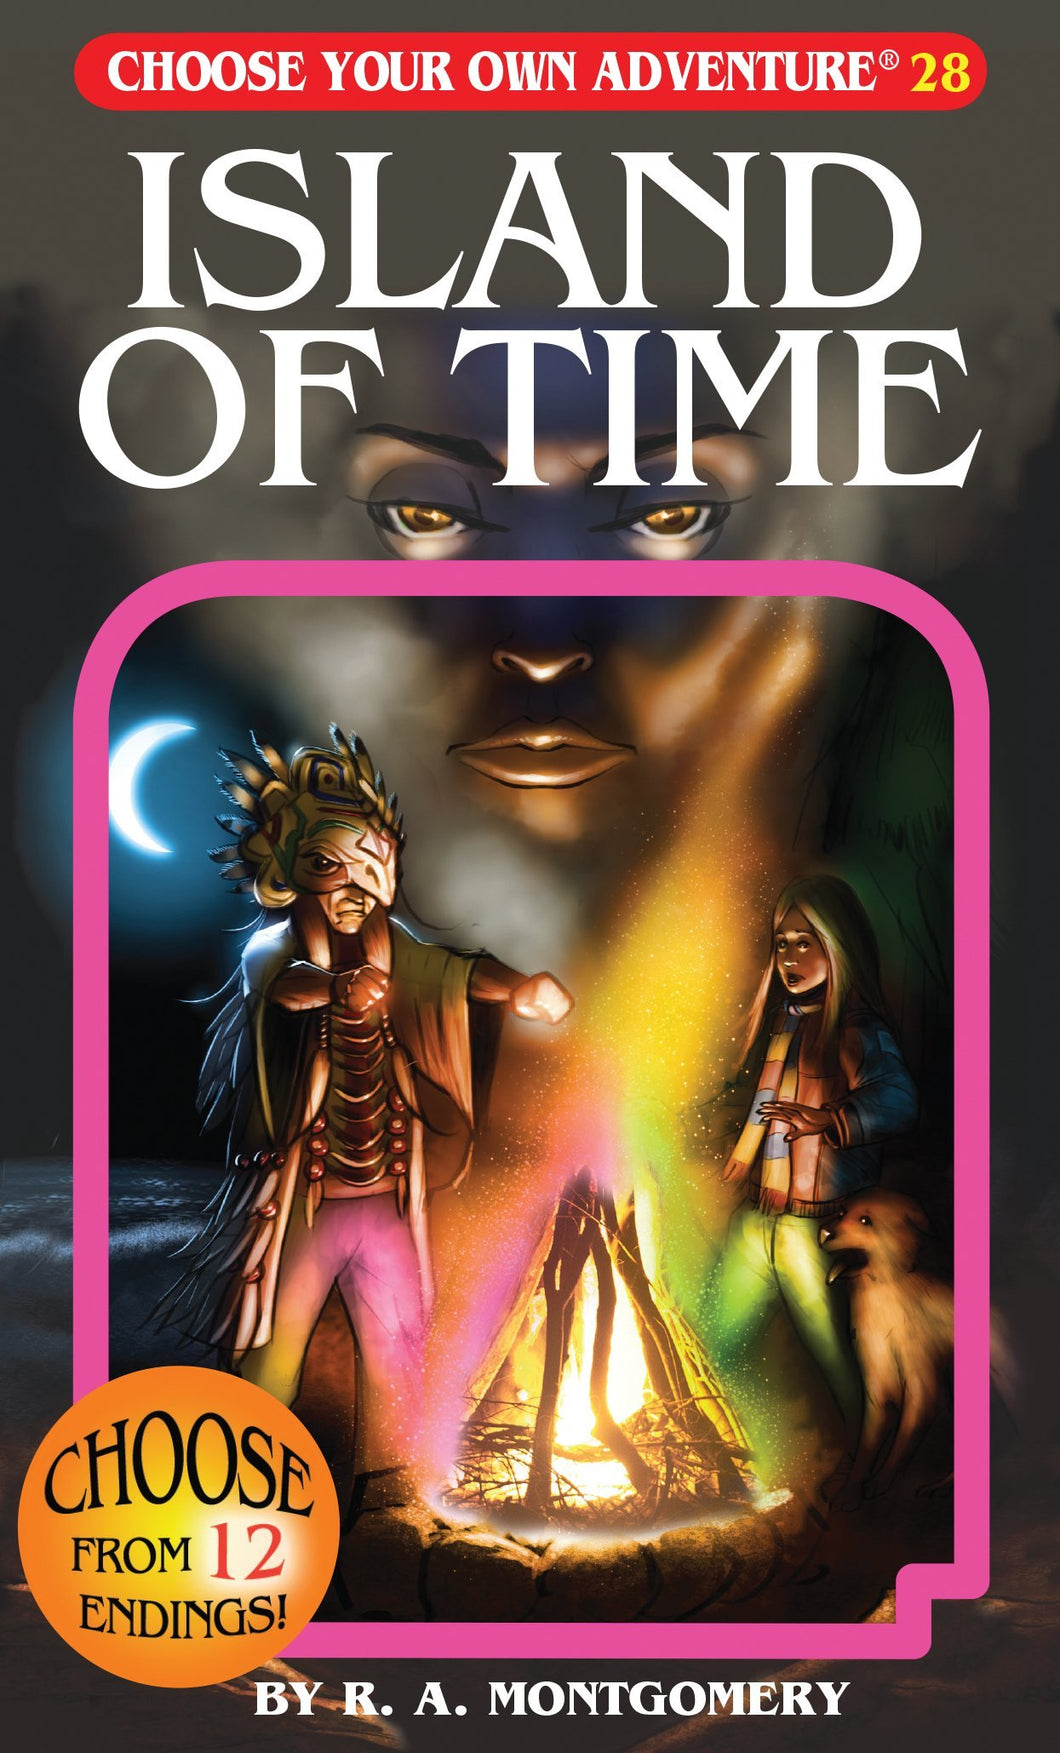 Choose Your Own Adventure Book-Island of Time #28